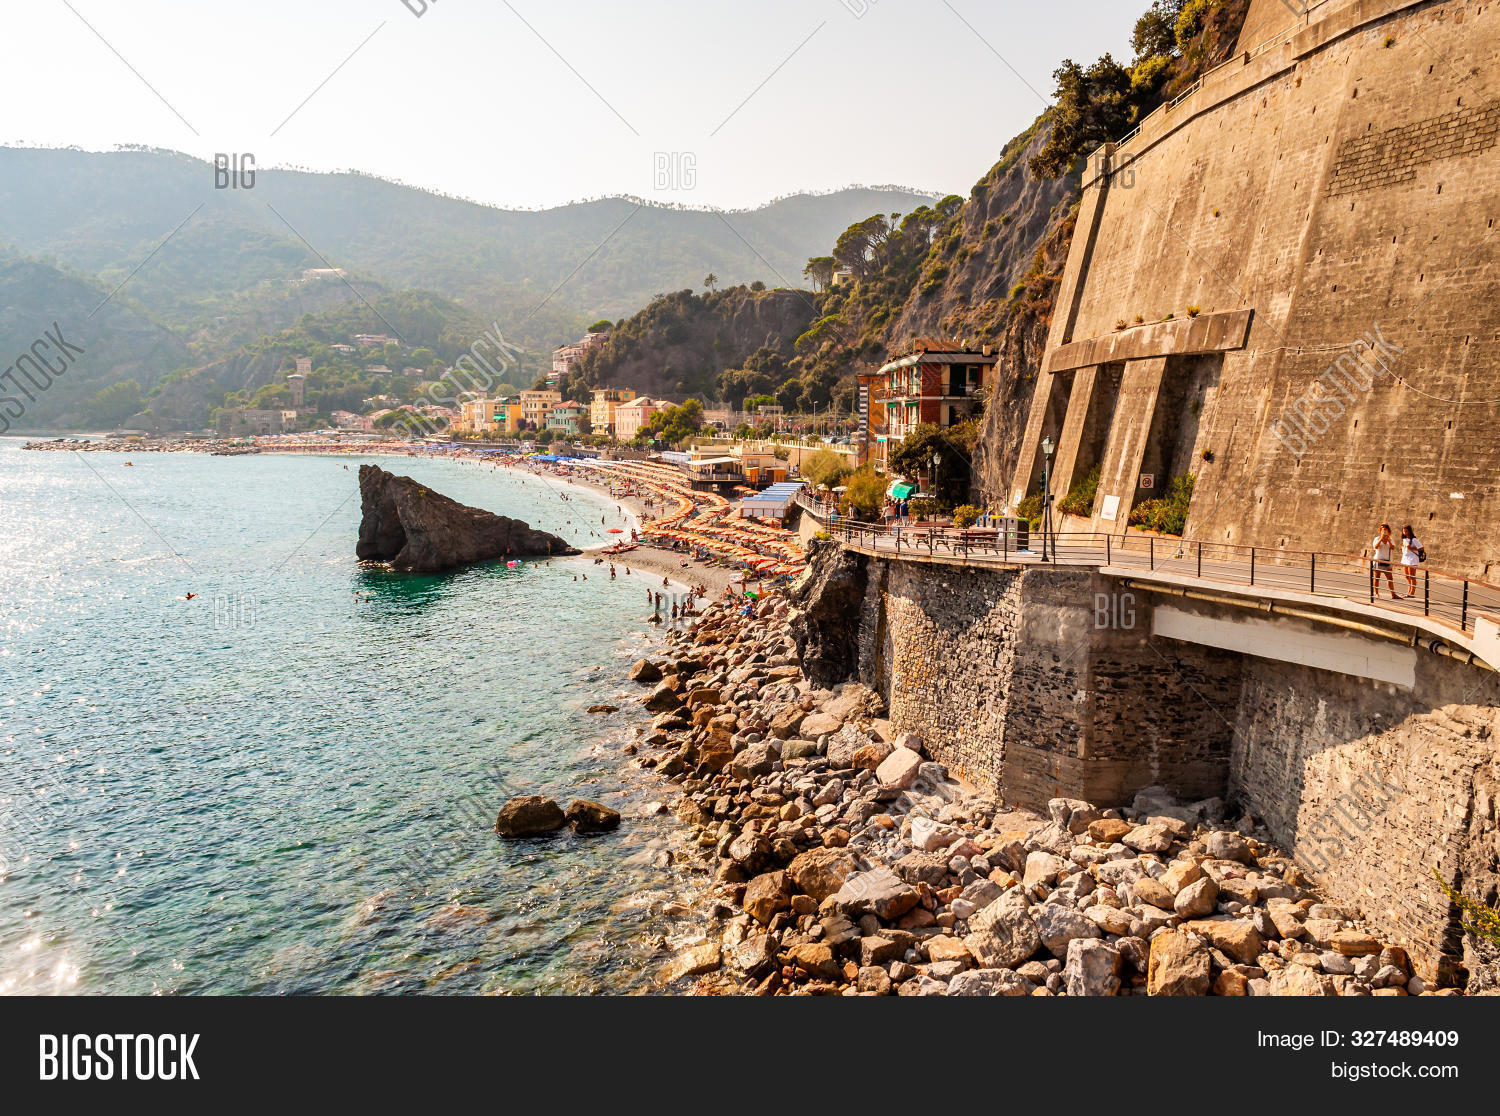 Monterosso Al Mare, Italy - September 02, 2019: On The Way To The Famous Beach In Monterosso Al Mare